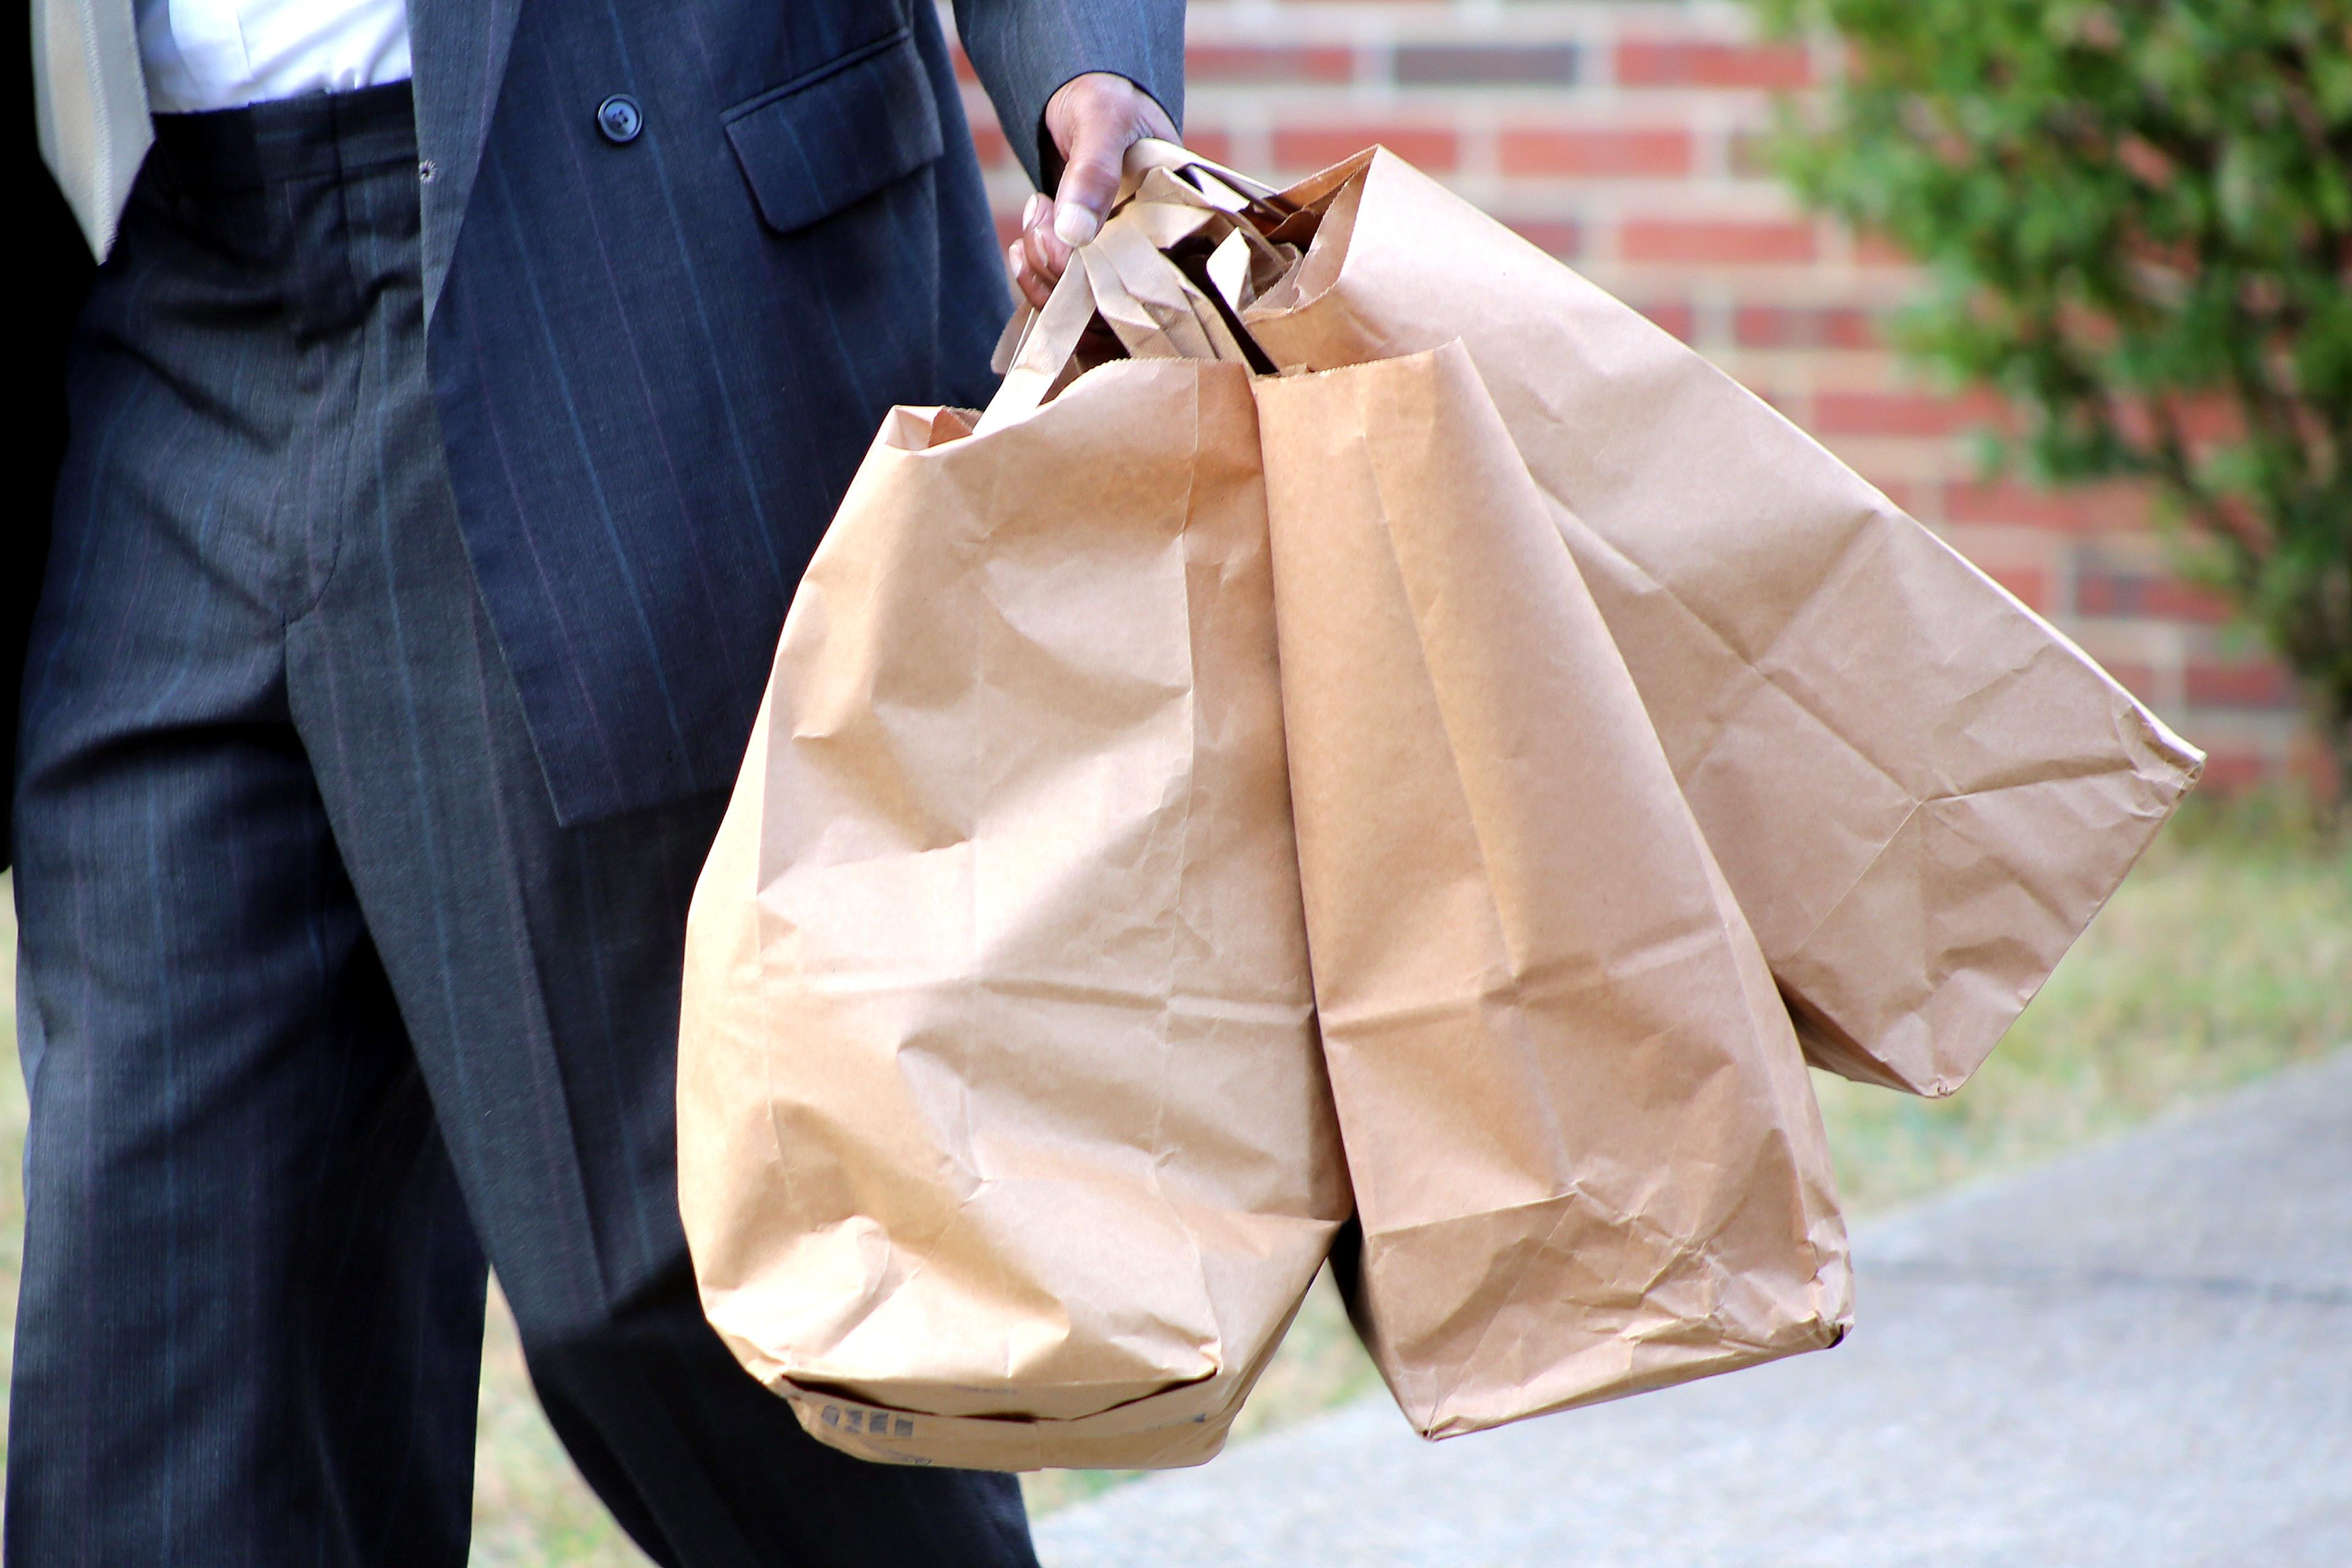 More People Than Ever Are Opting In To Use Paper Bags As An Alternative Plastic Each Person Has Their Own Reasons For Making This Choice